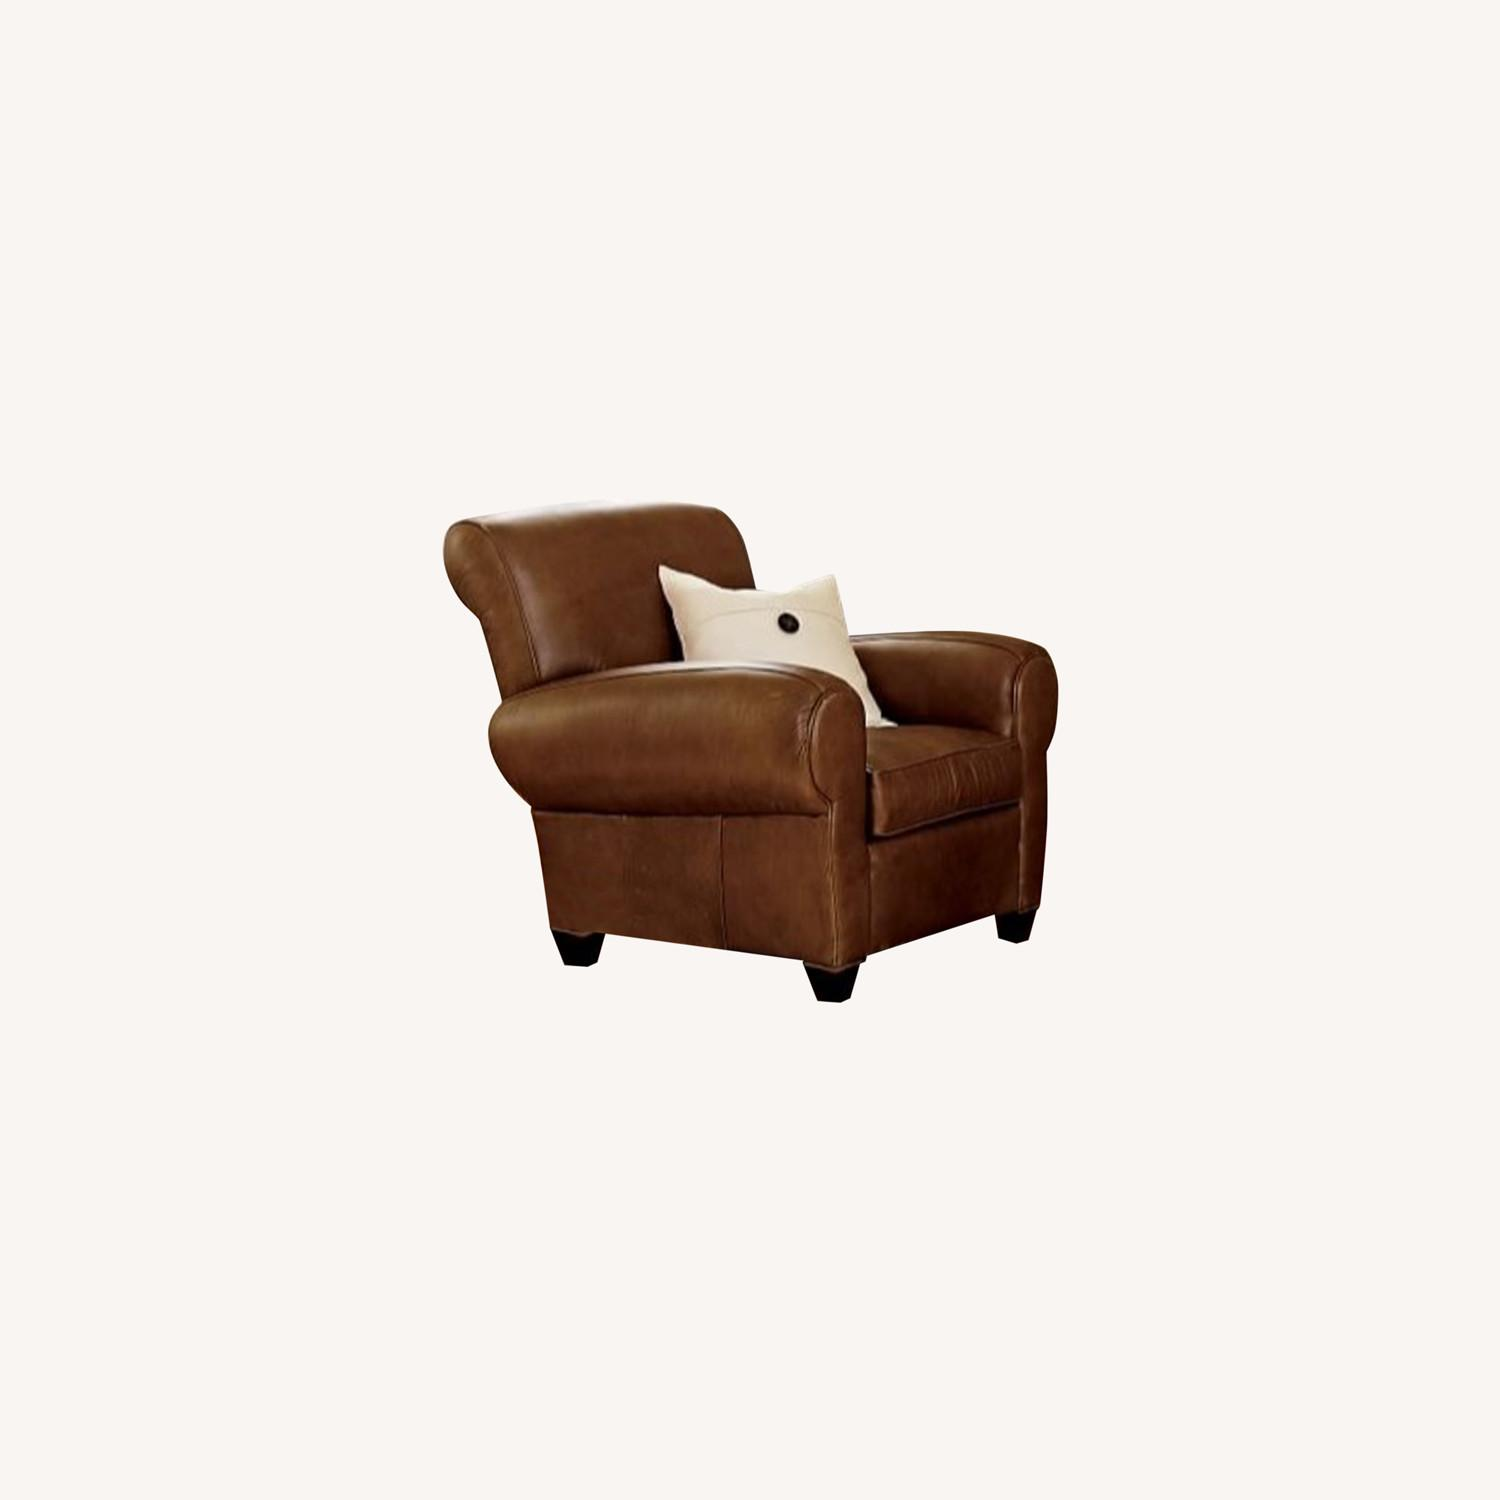 Pottery Barn Leather Armchair - image-0